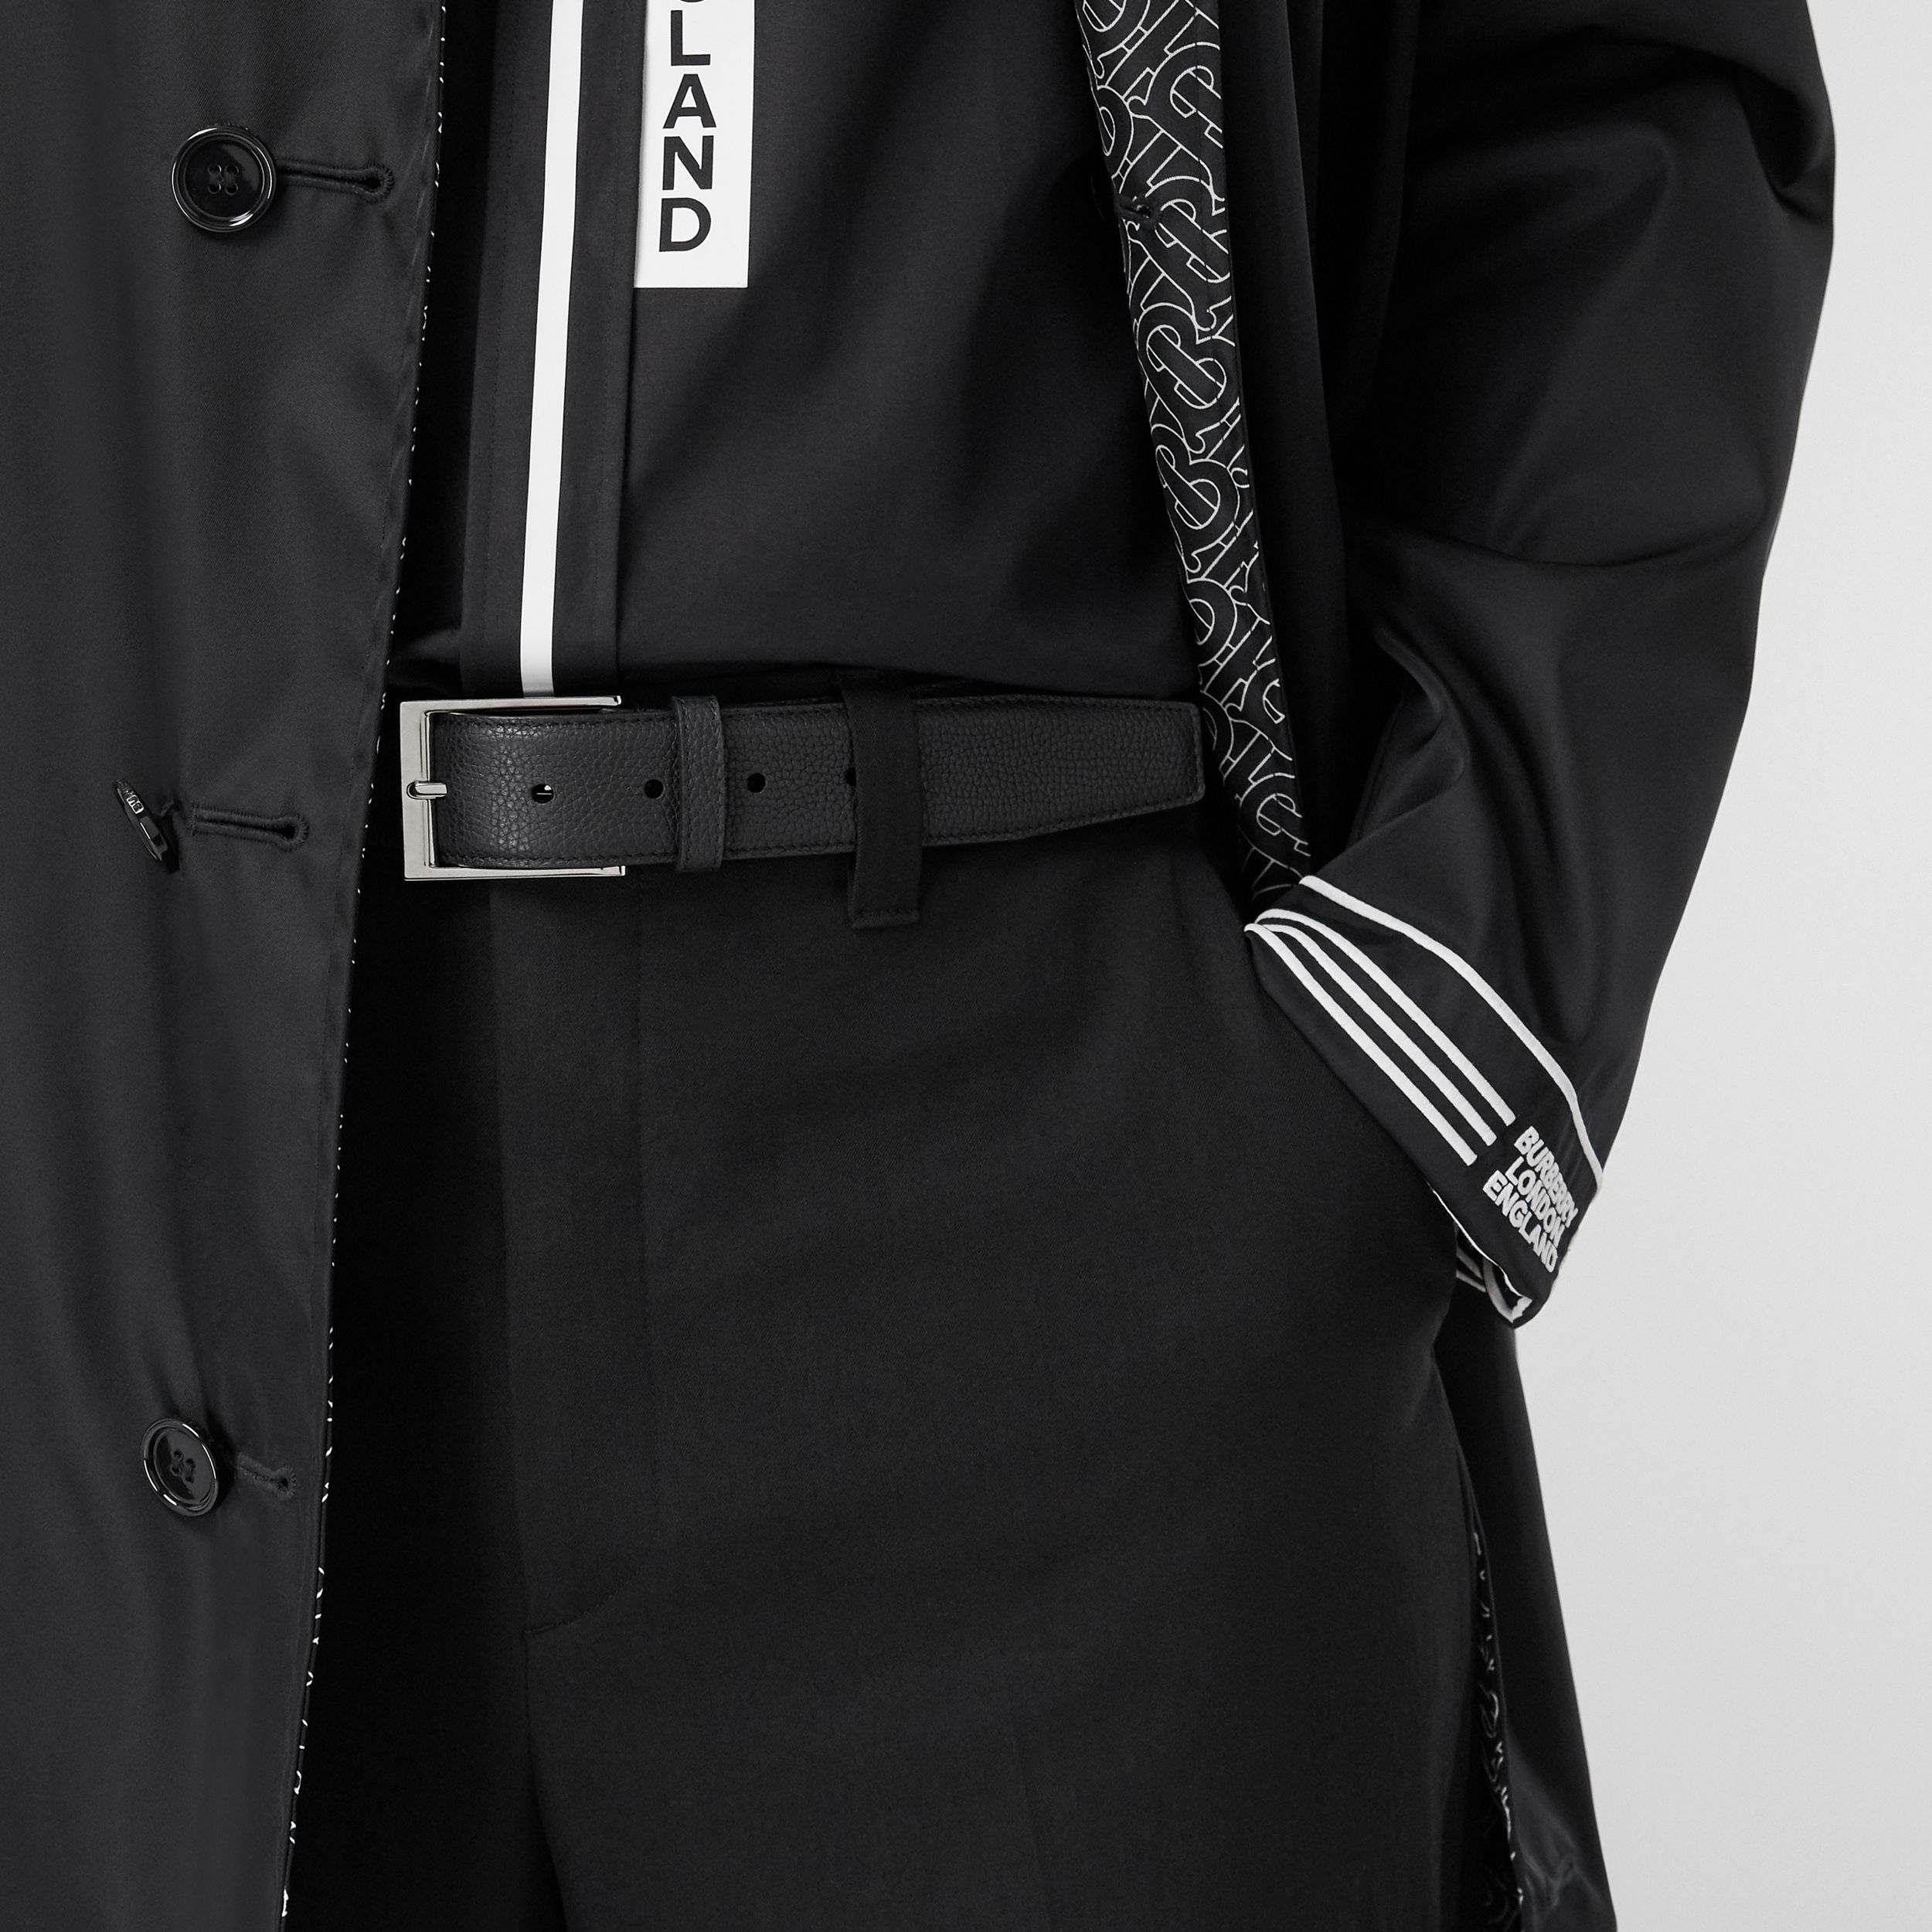 Grainy Leather Belt in Black - Men | Burberry - 3